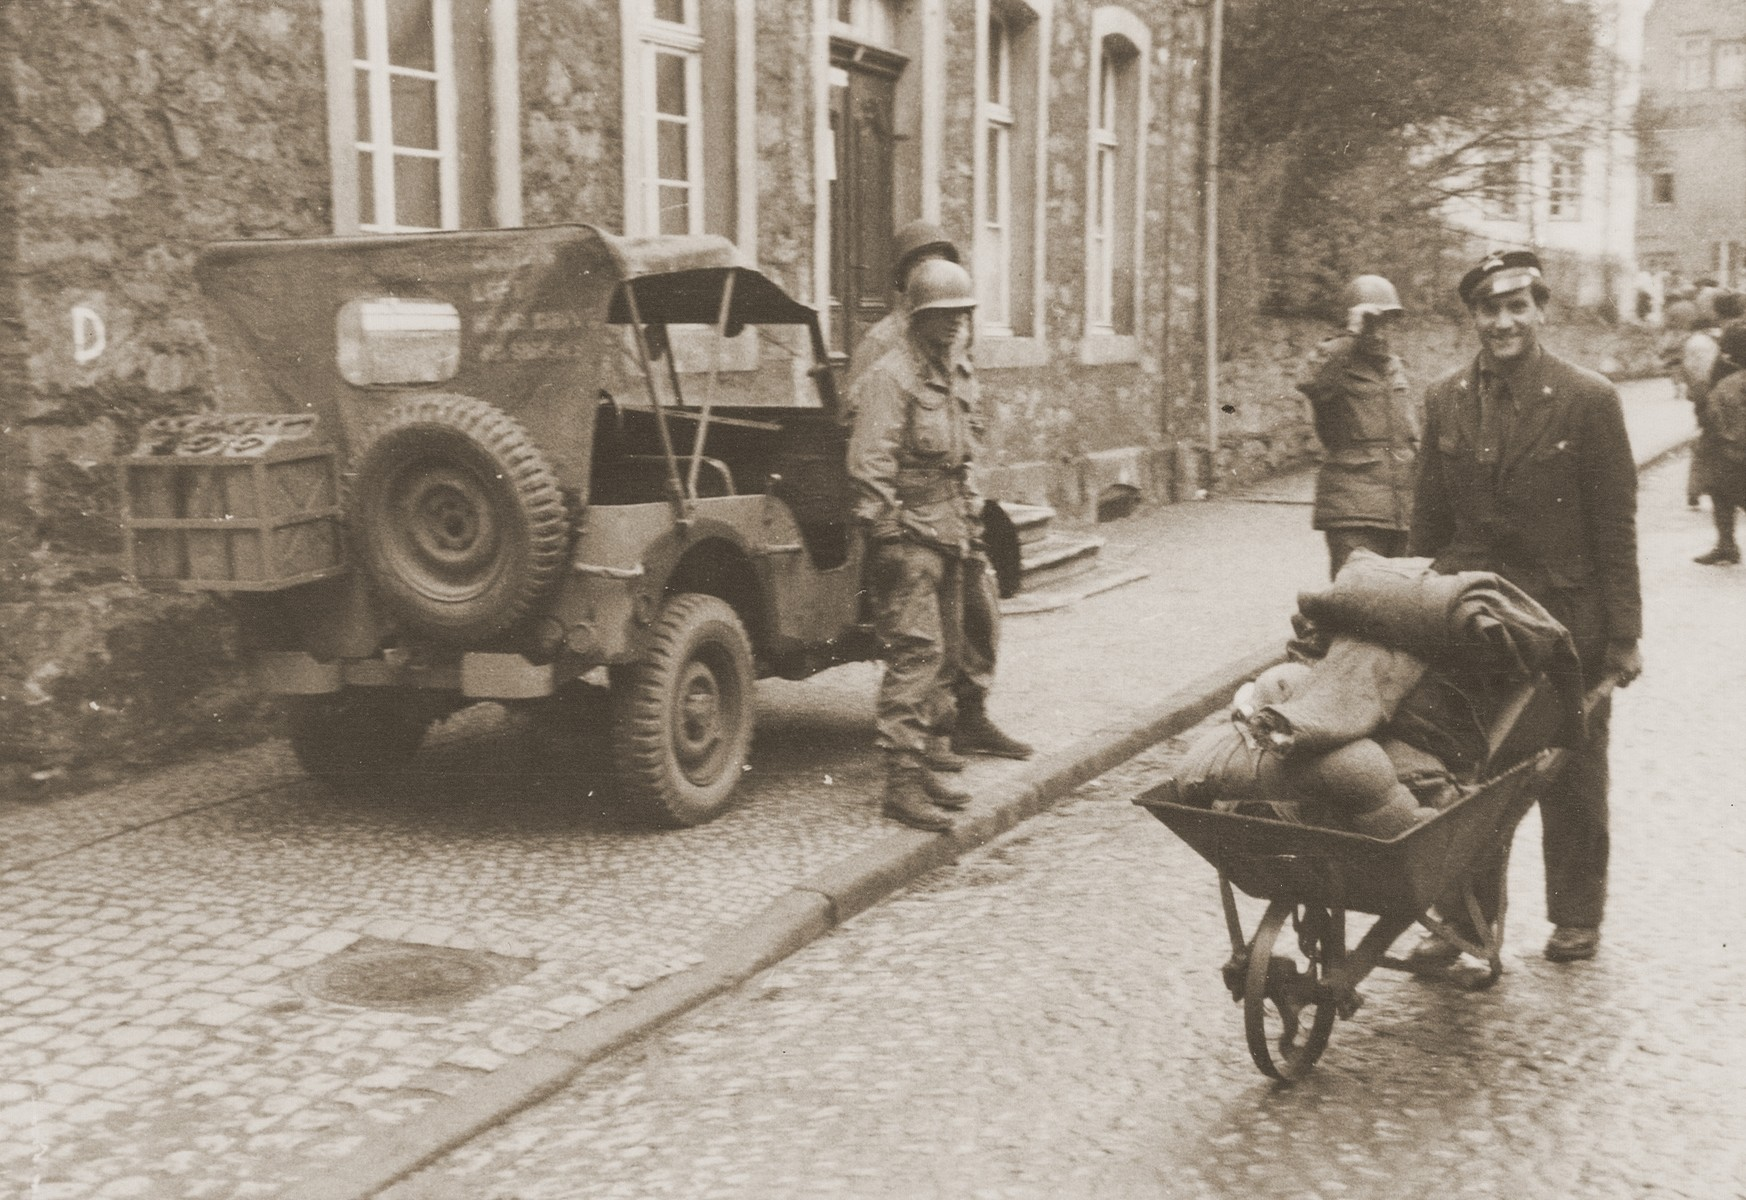 A displaced person carts his belongings through the streets of Dillenburg in a wheelbarrow.